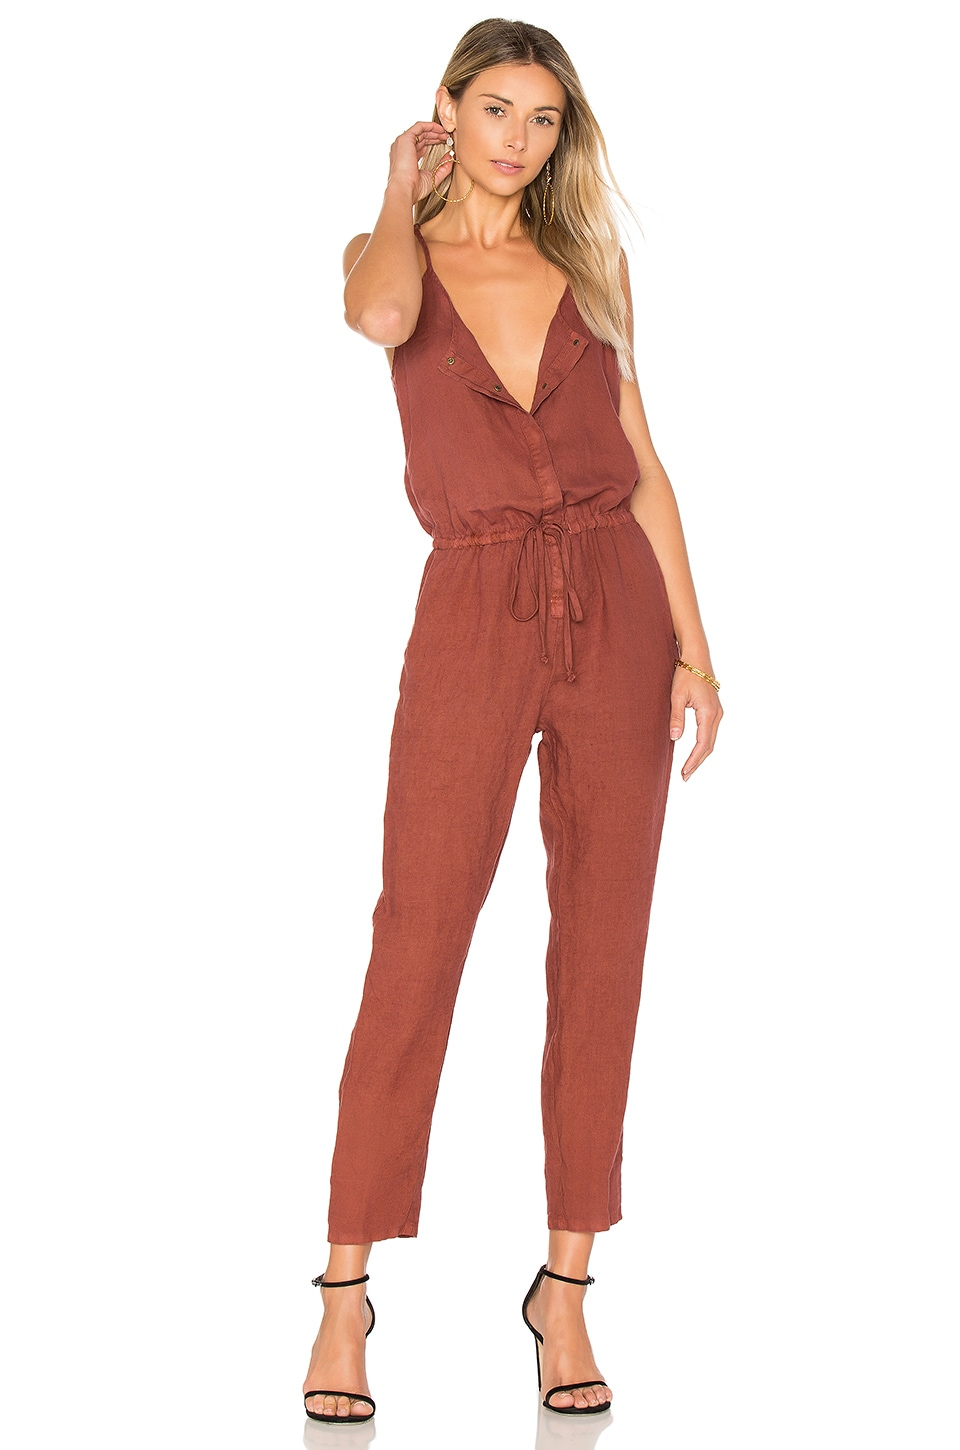 French Linen Jumpsuit by Enza Costa